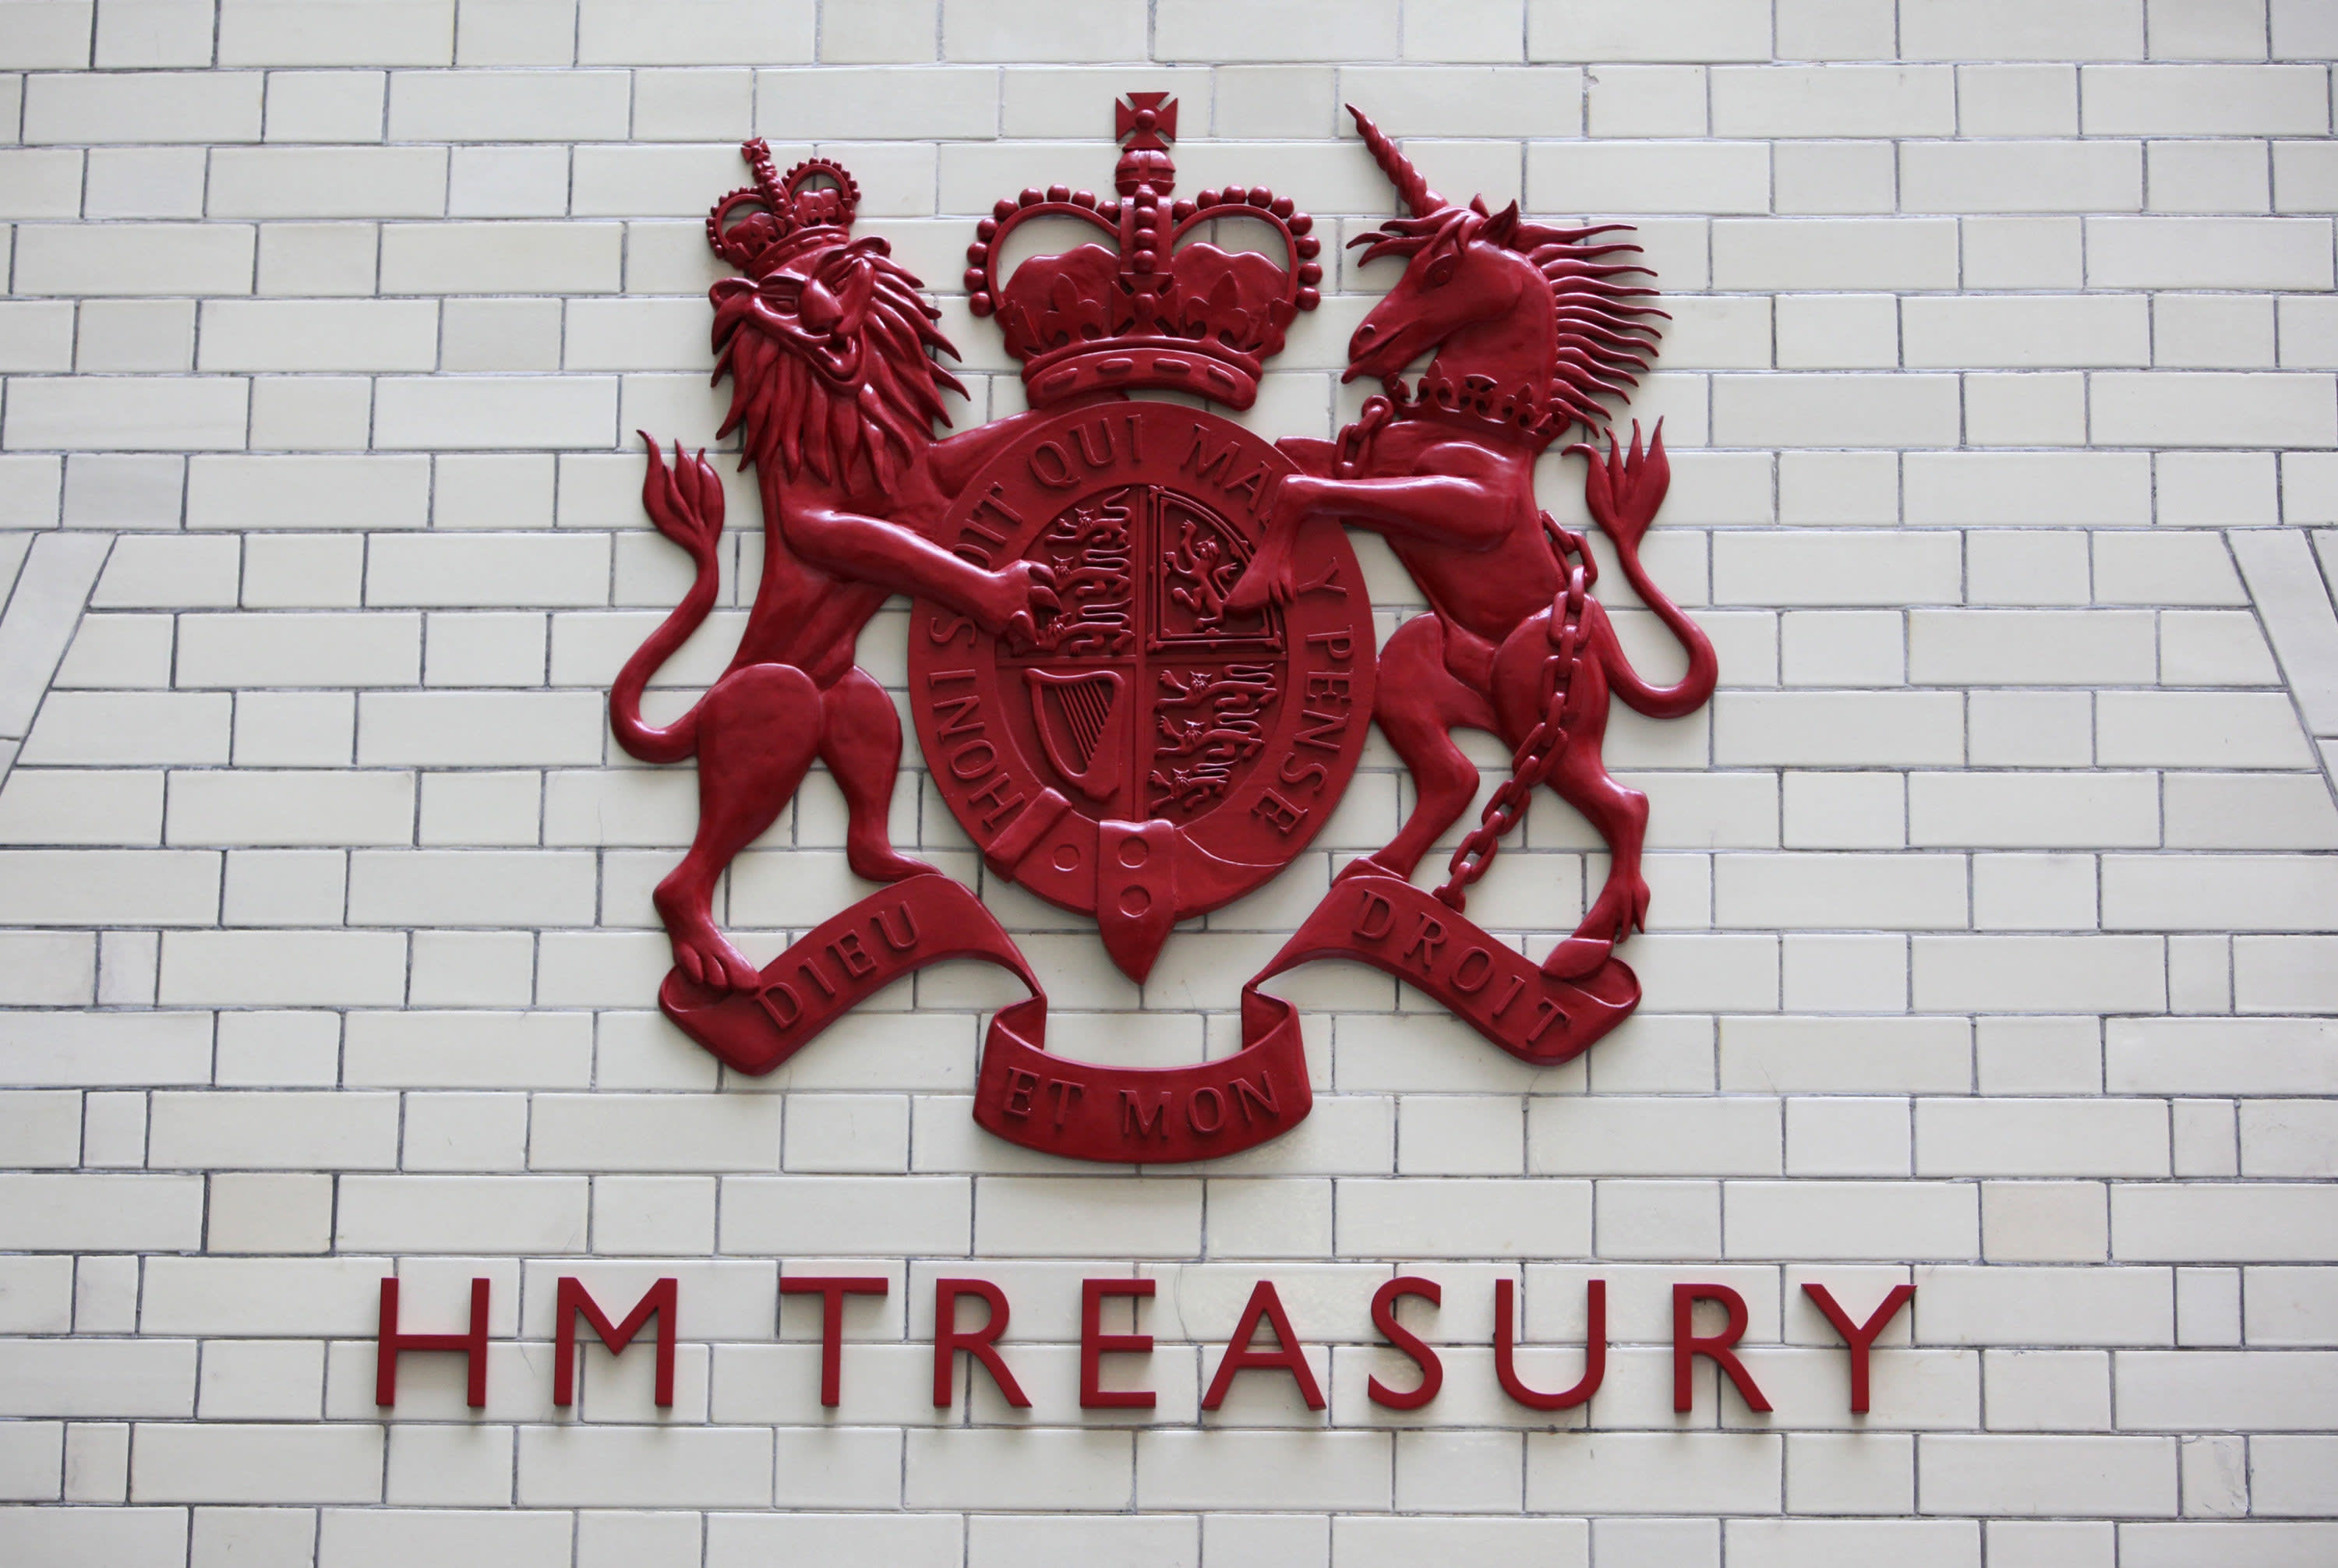 Government sticks to guns on secondary annuity market